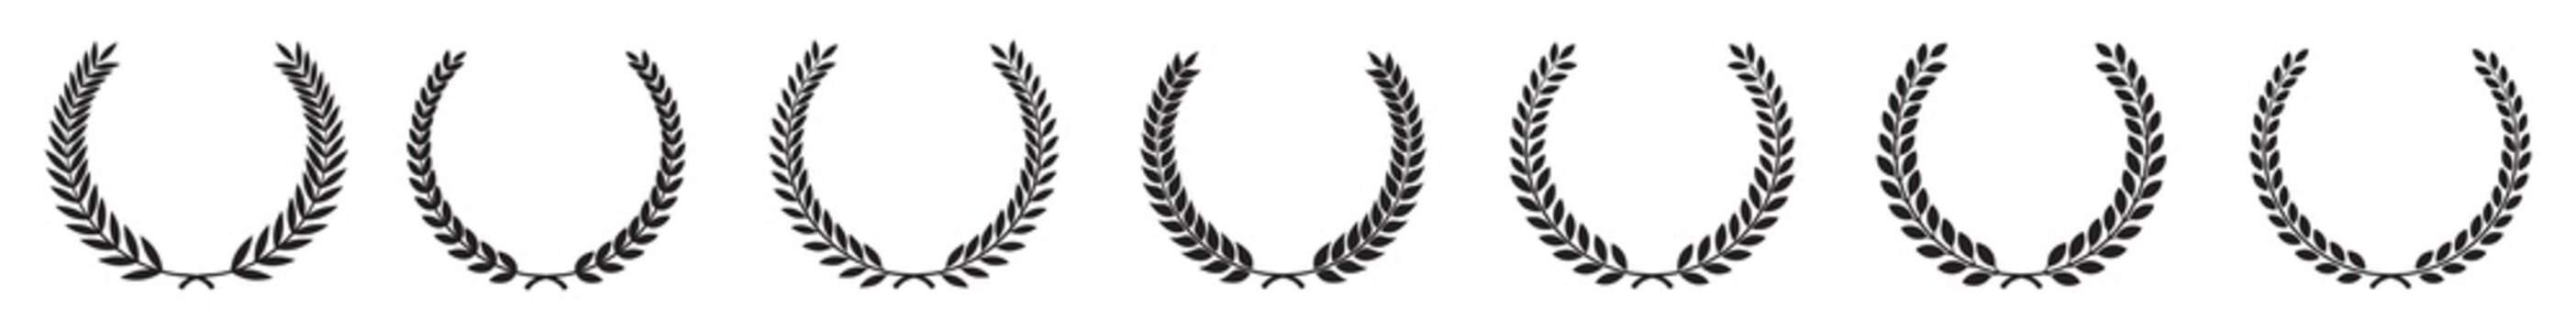 Set black silhouette circular laurel foliate isolated on white background, depicting an award, achievement, heraldry, nobility, Emblem floral greek branch flat style